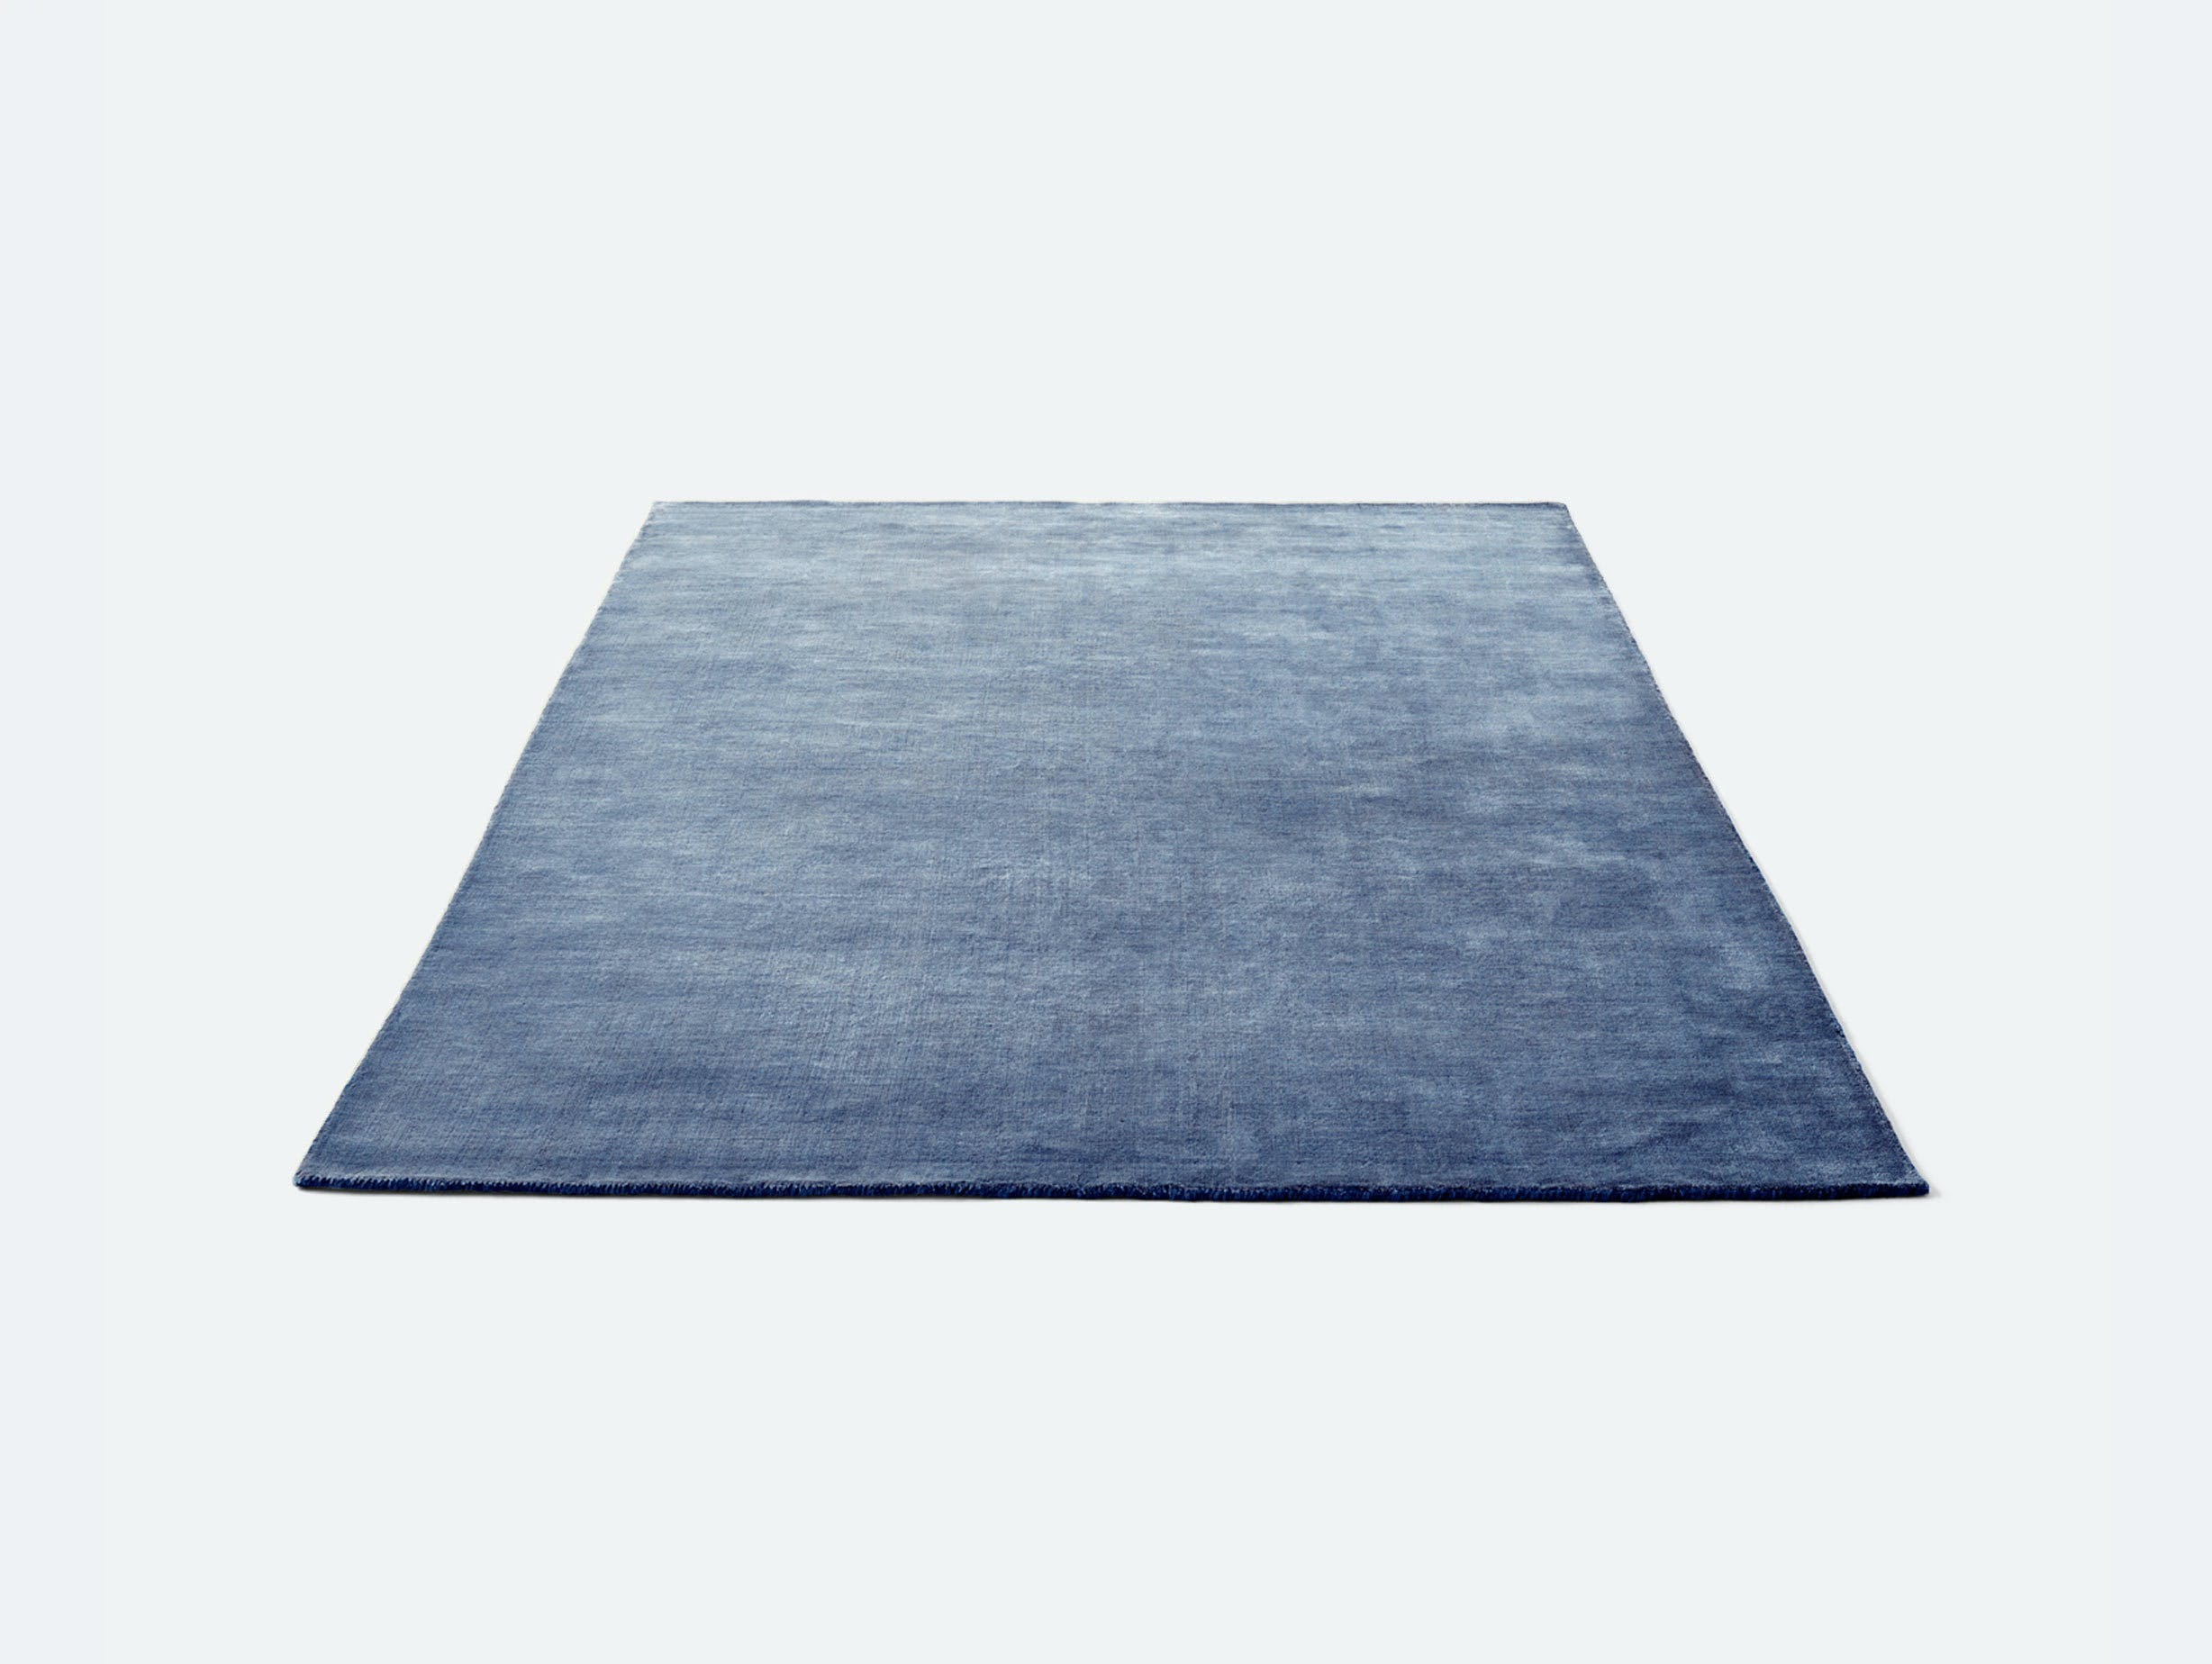 Andtradition the moor rug AP6 grey blue thunder